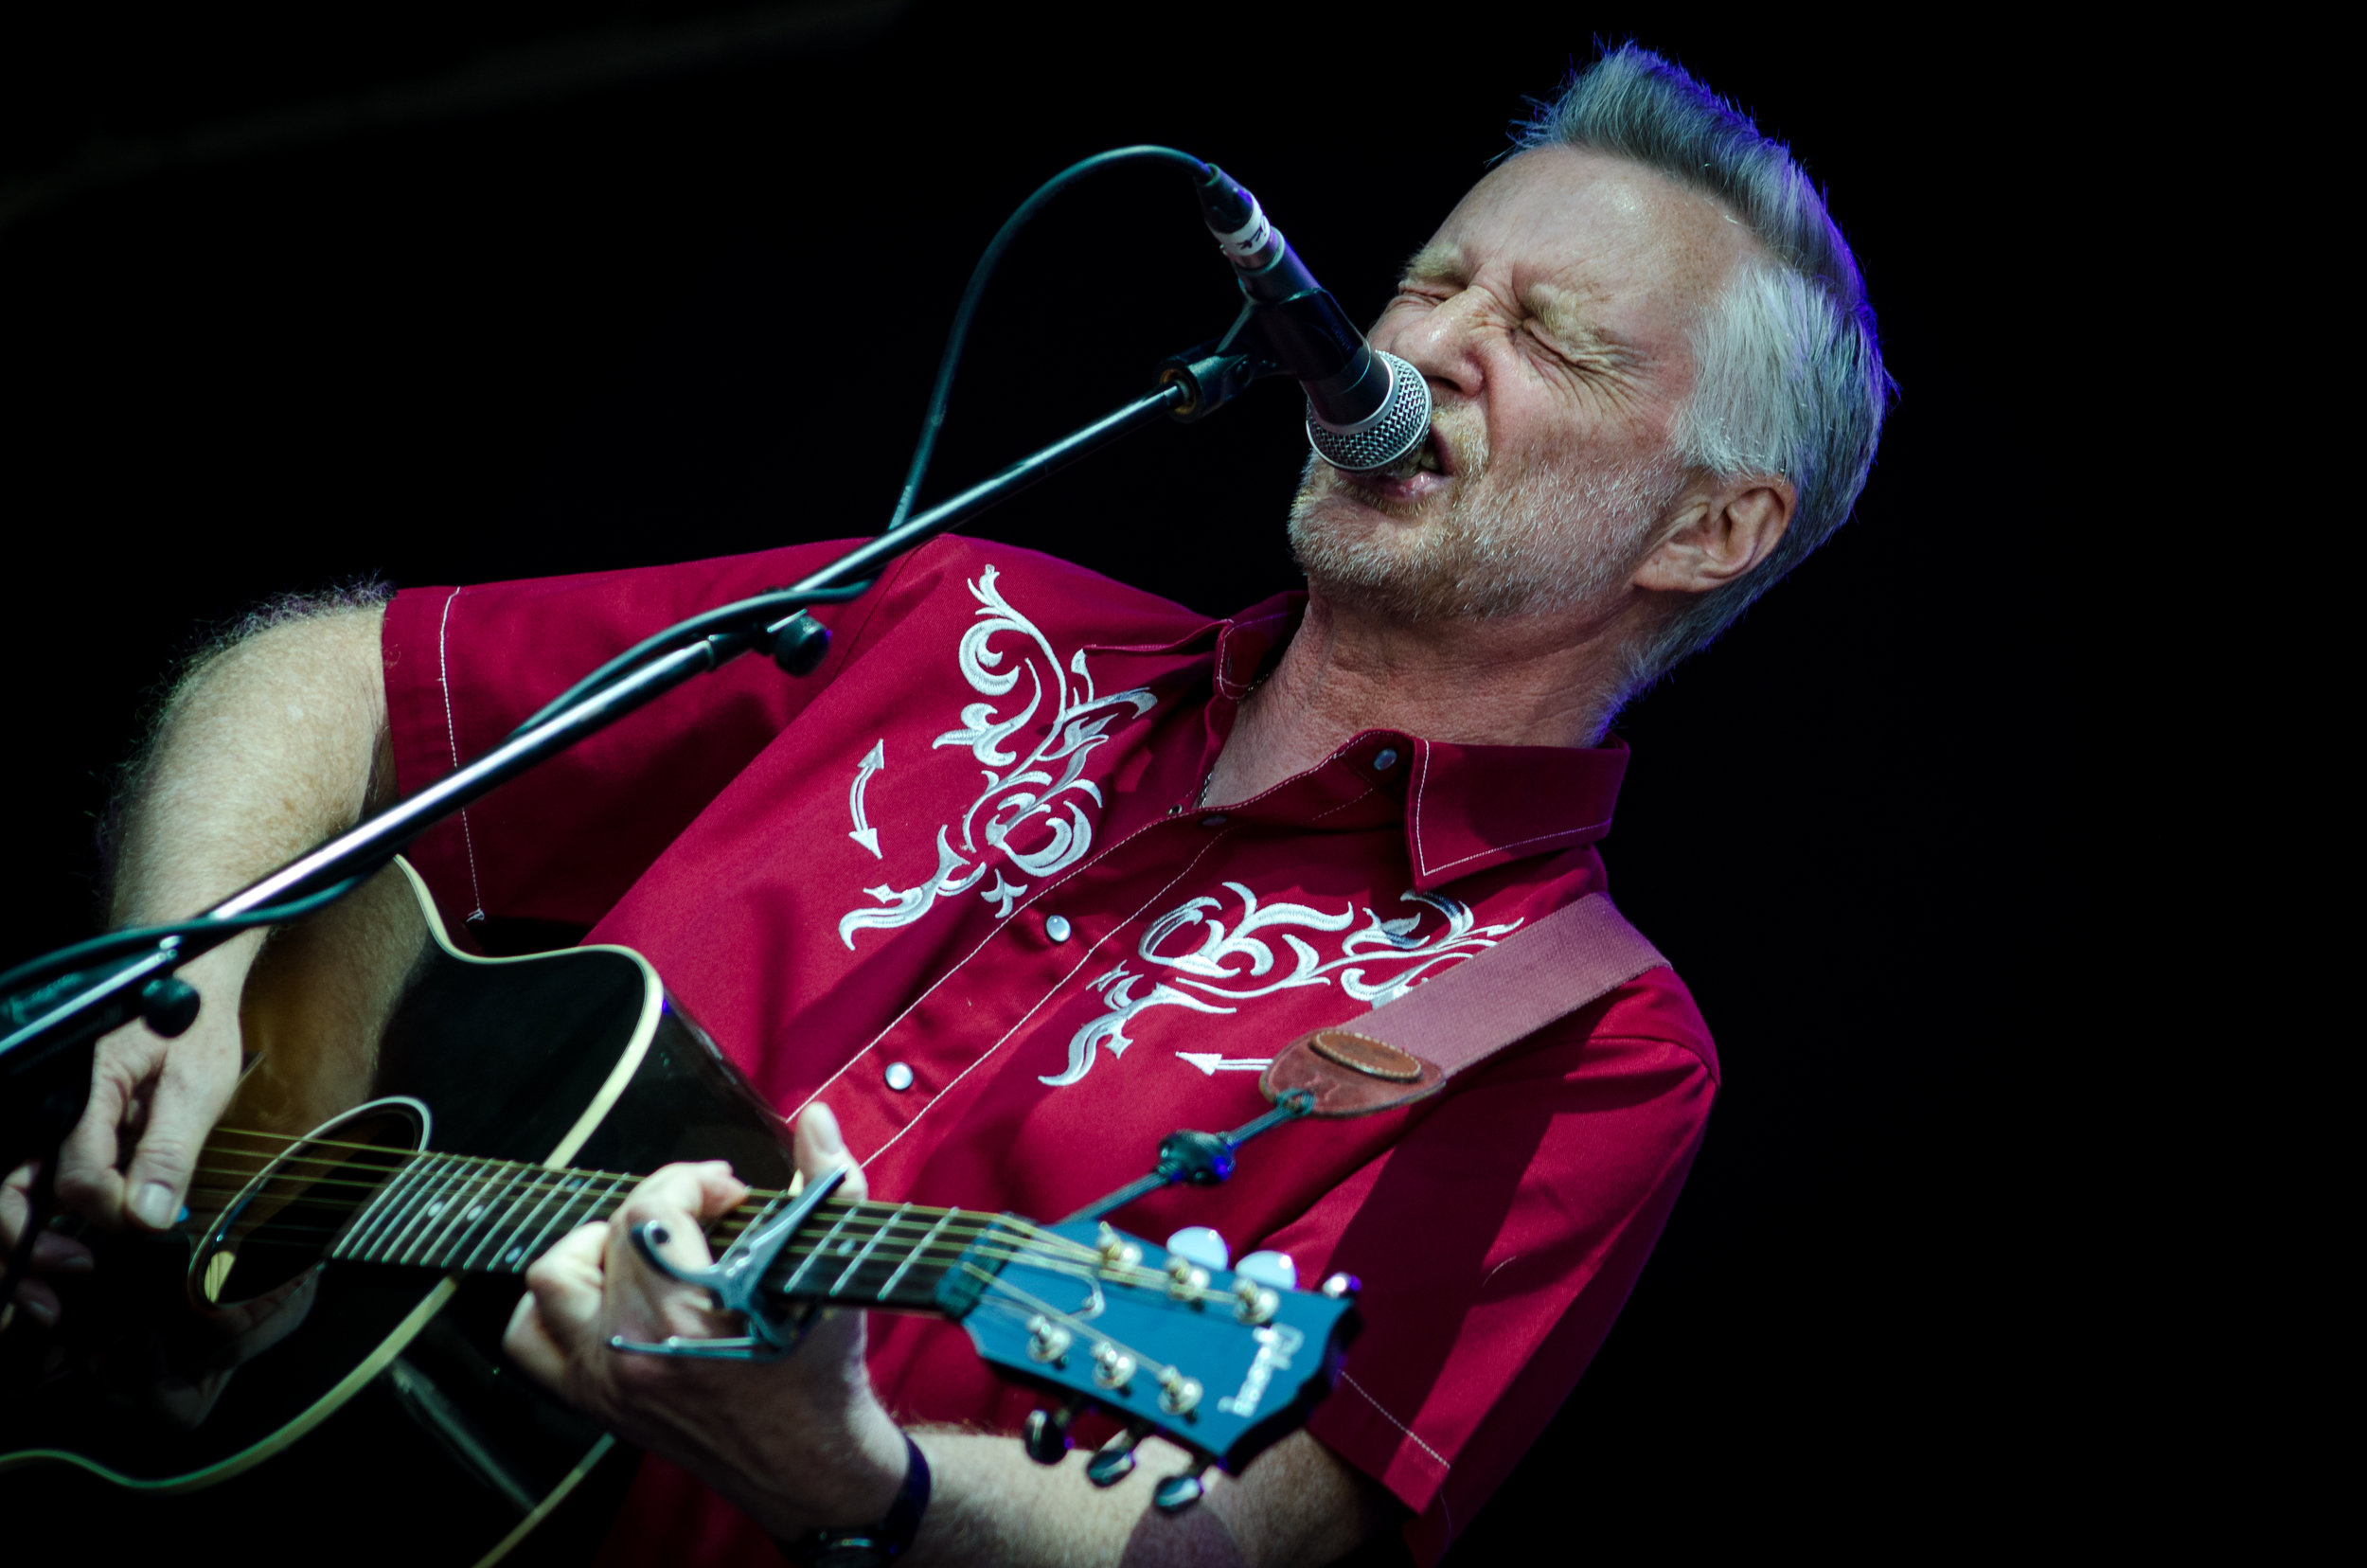 billy_bragg_Mcr.jpg